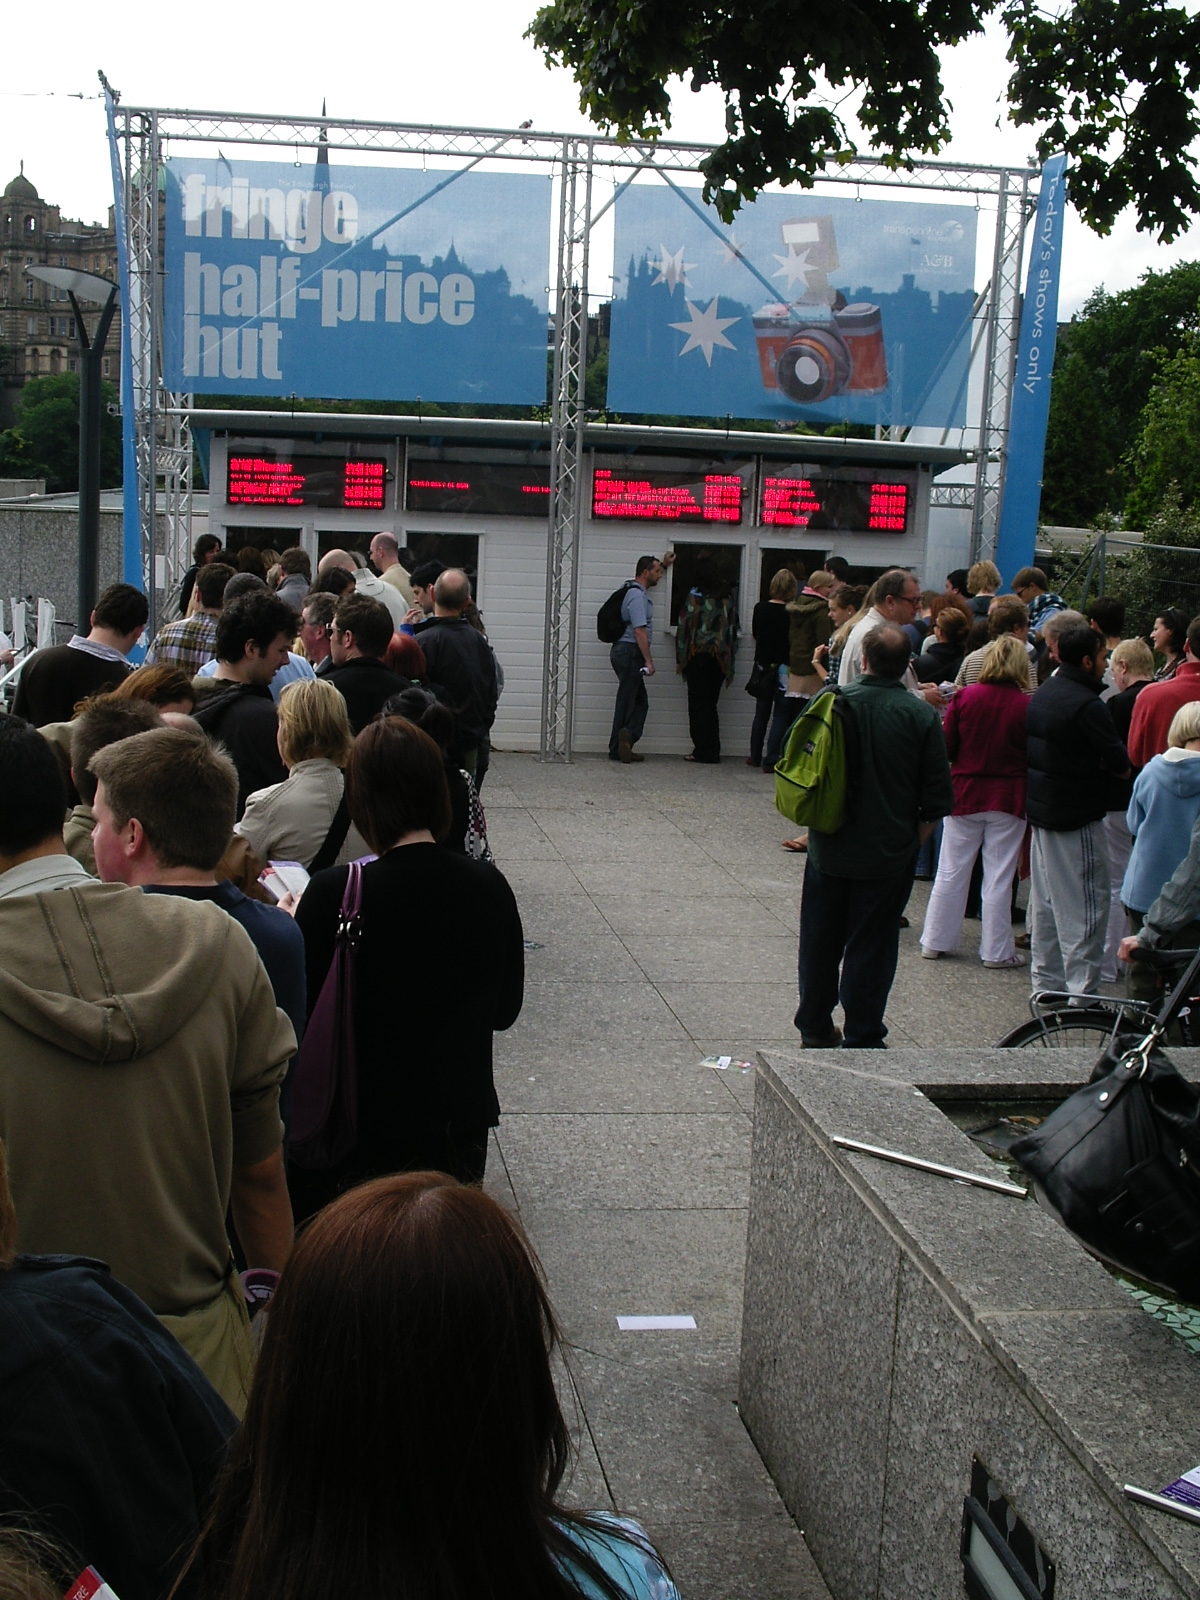 Queue for the Fringe - Half-price Hut